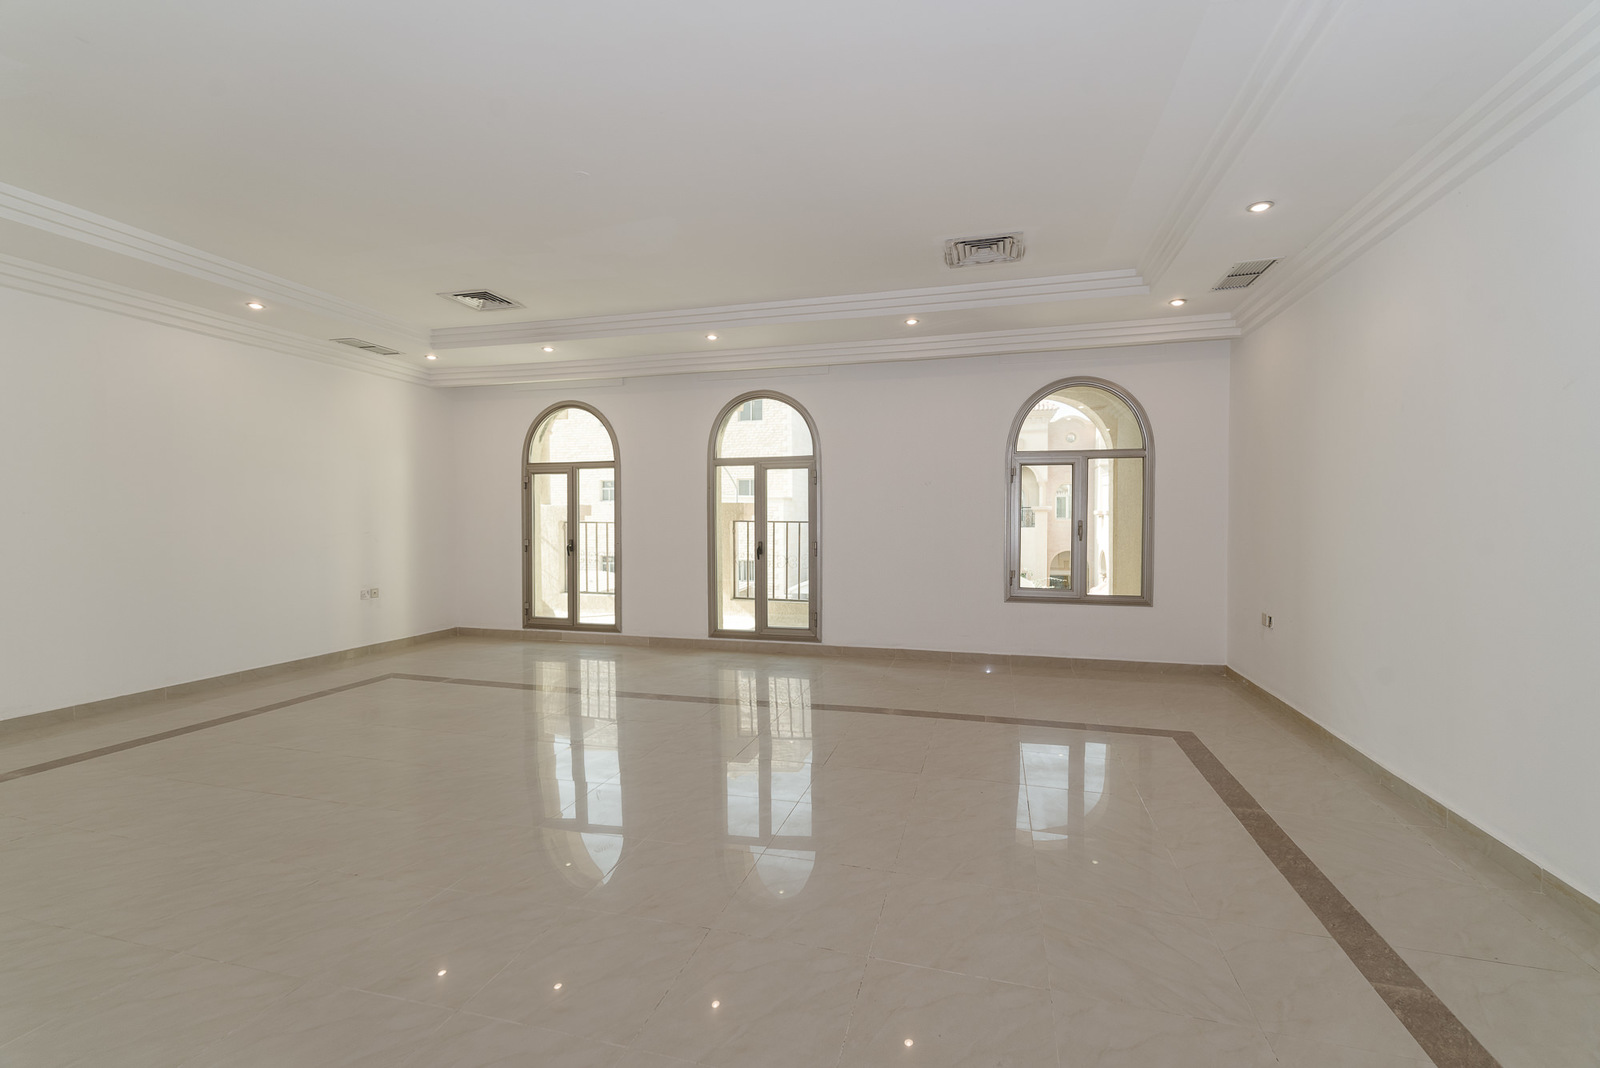 Egaila – large, unfurnished, seven bedroom villa